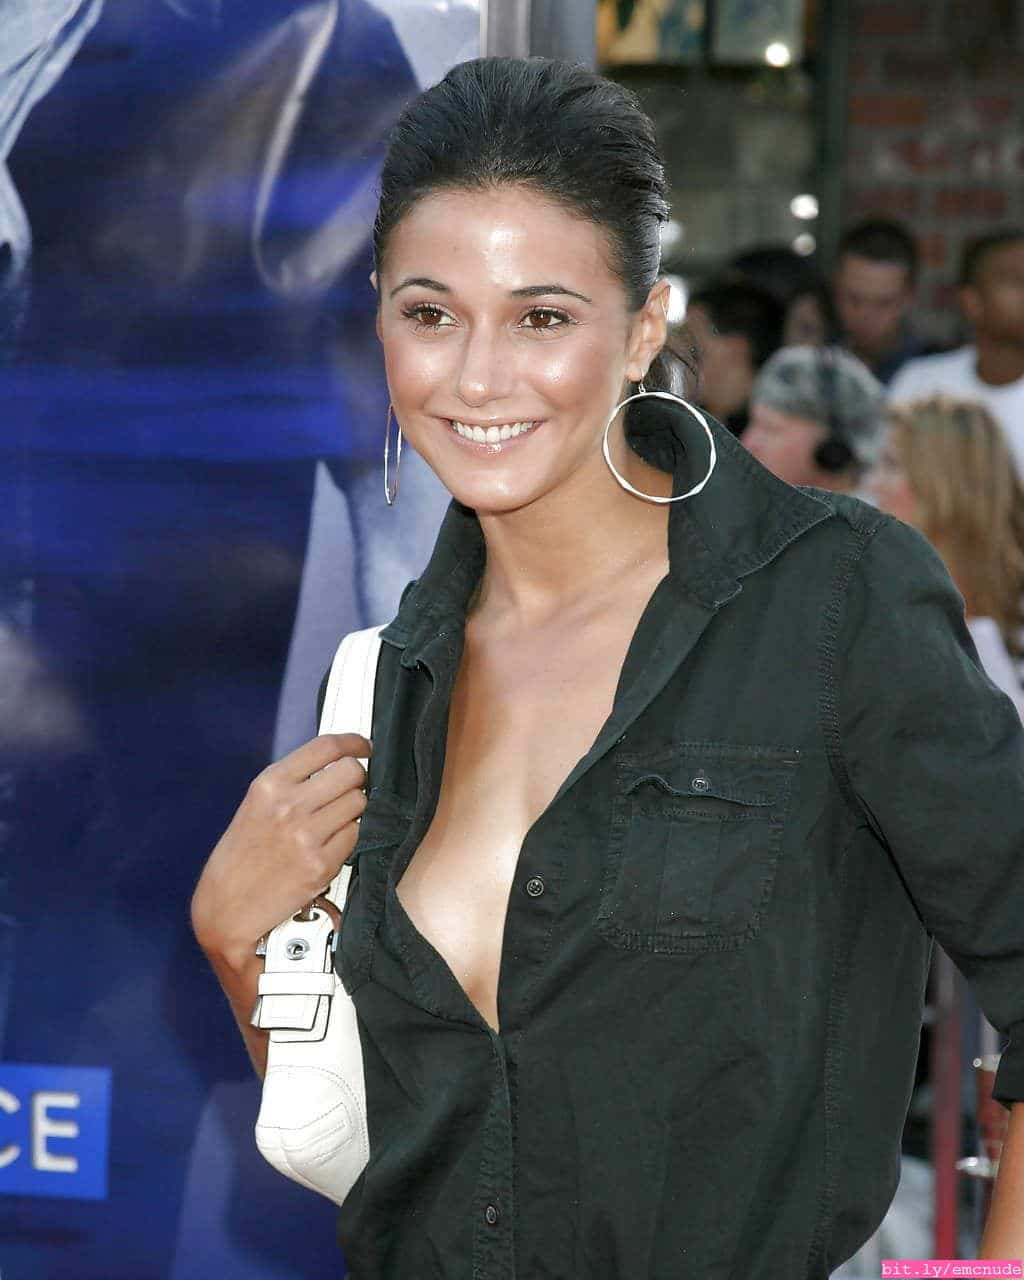 Emmanuelle Chriqui Nude - Youll Love This Exotic Beauty